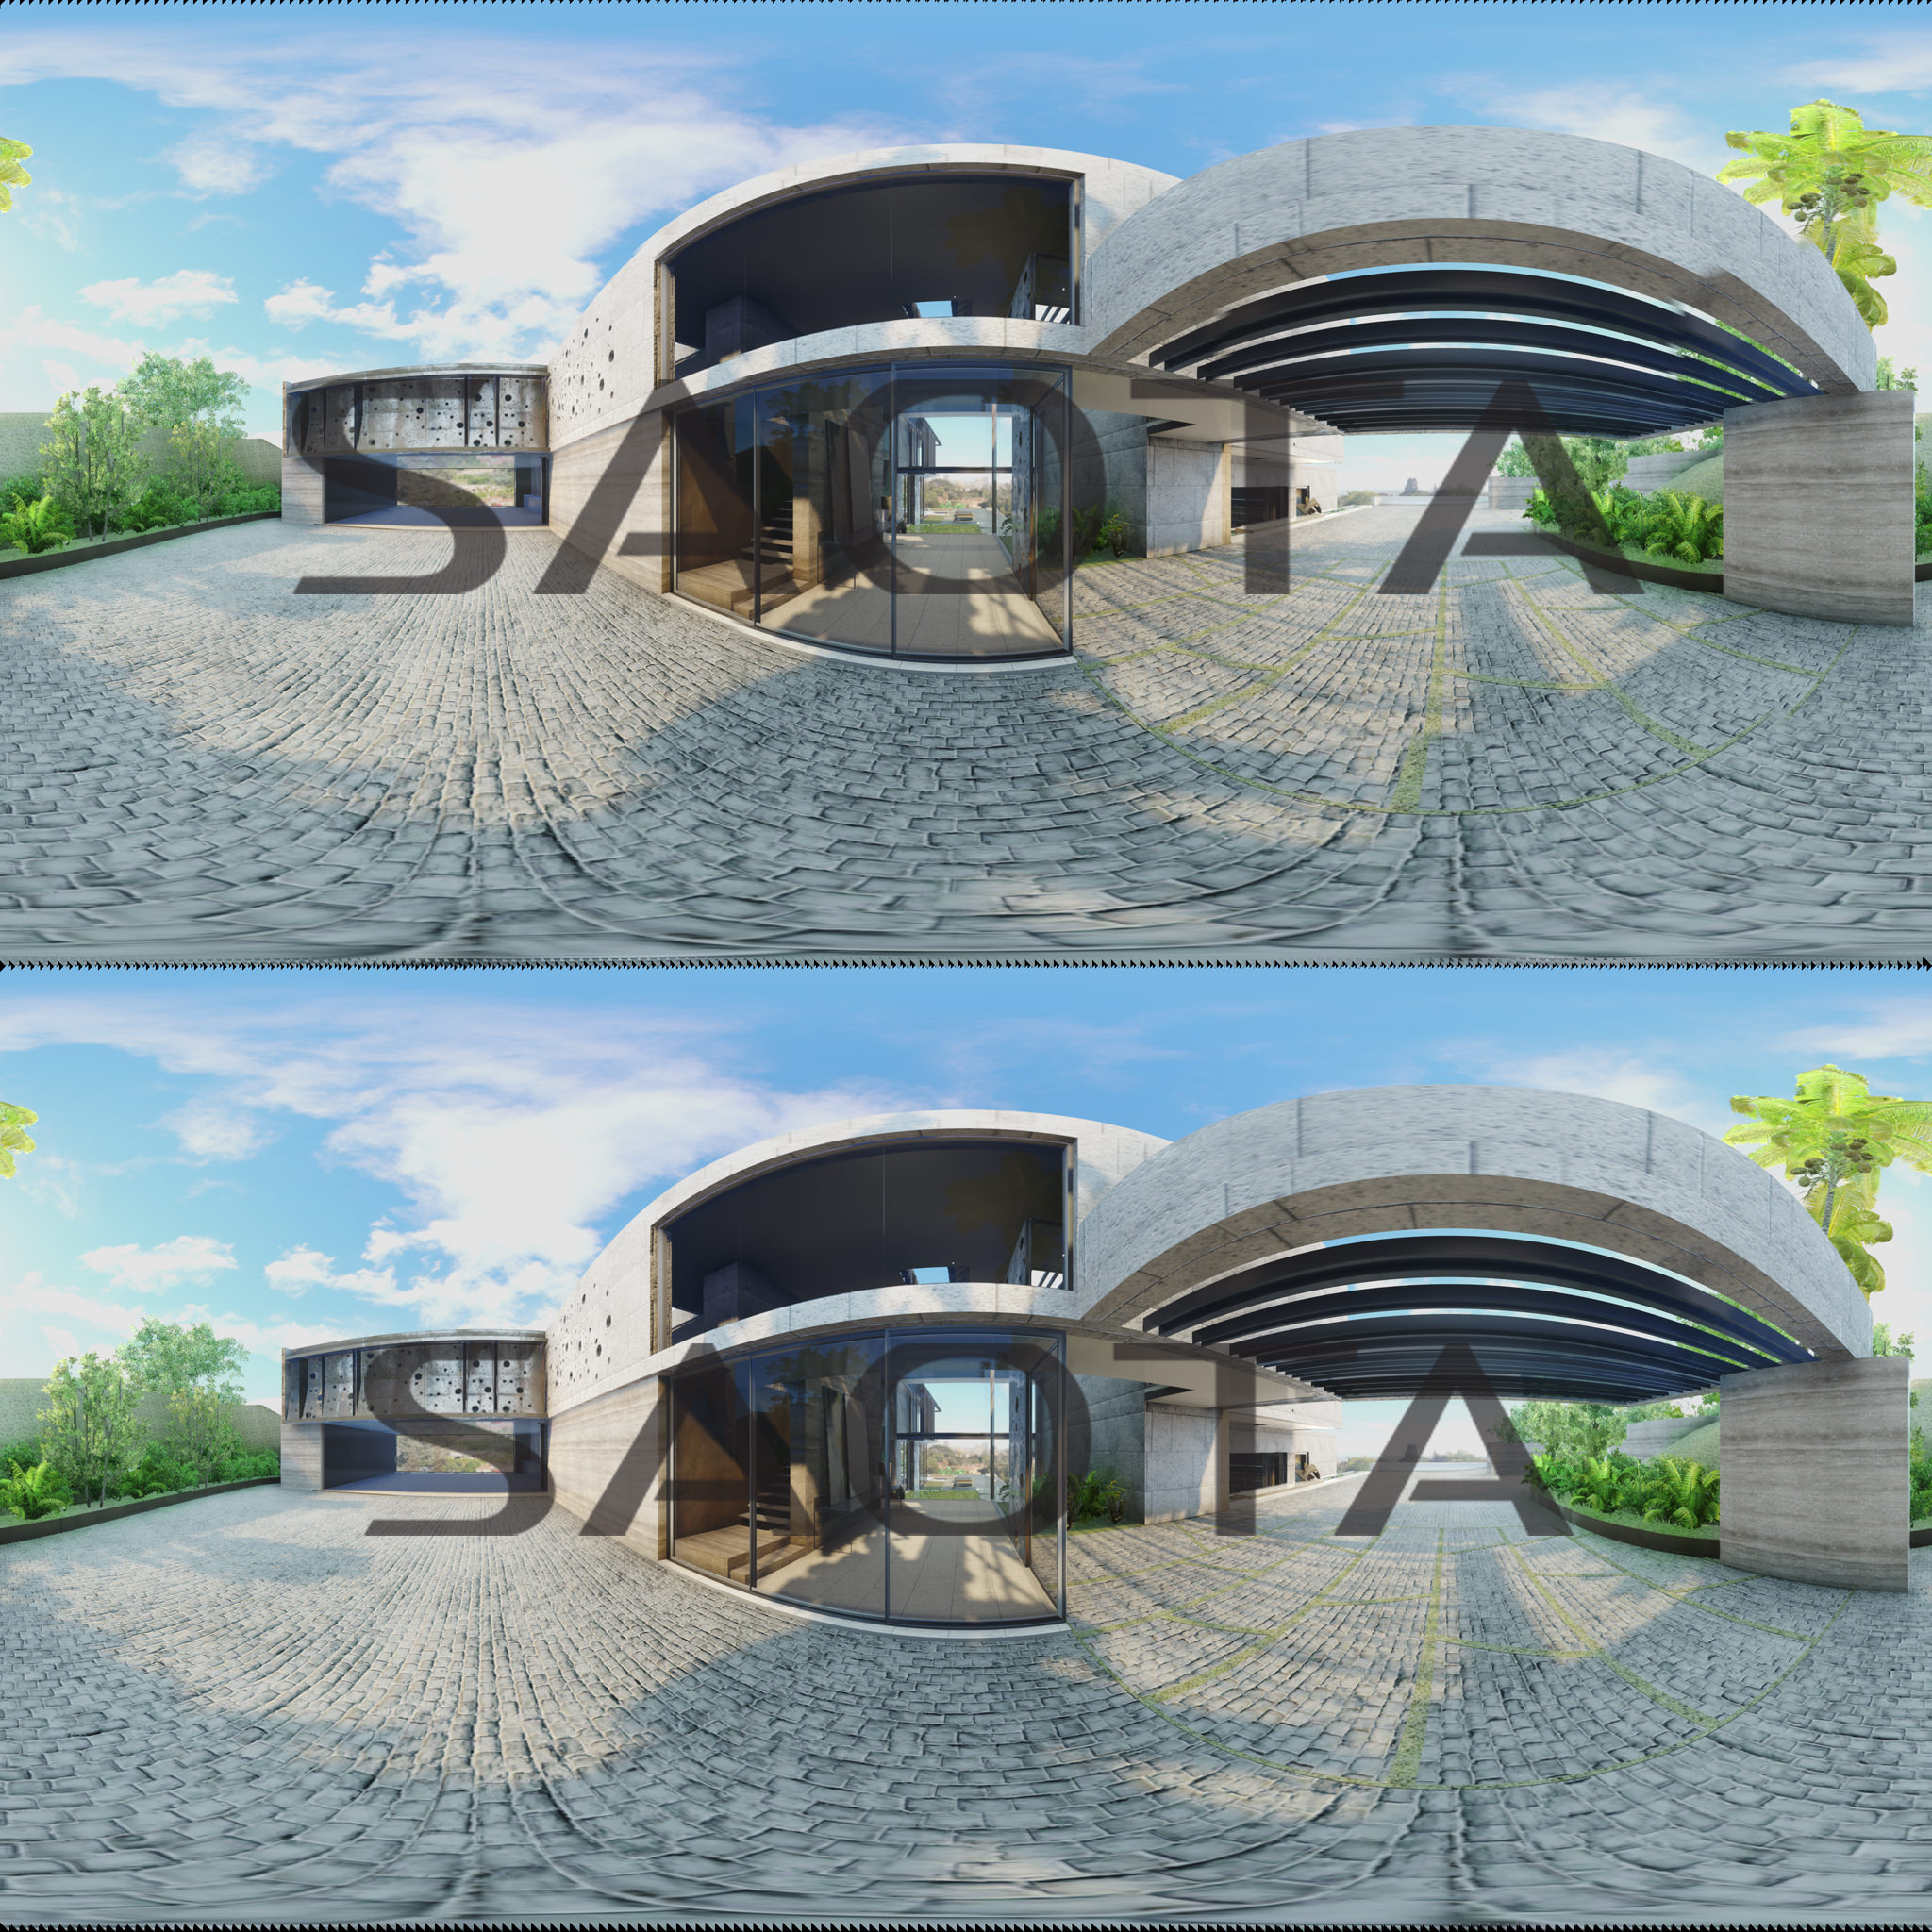 RELEASED] VR Panorama - render 360 stereo videos - Unity Forum